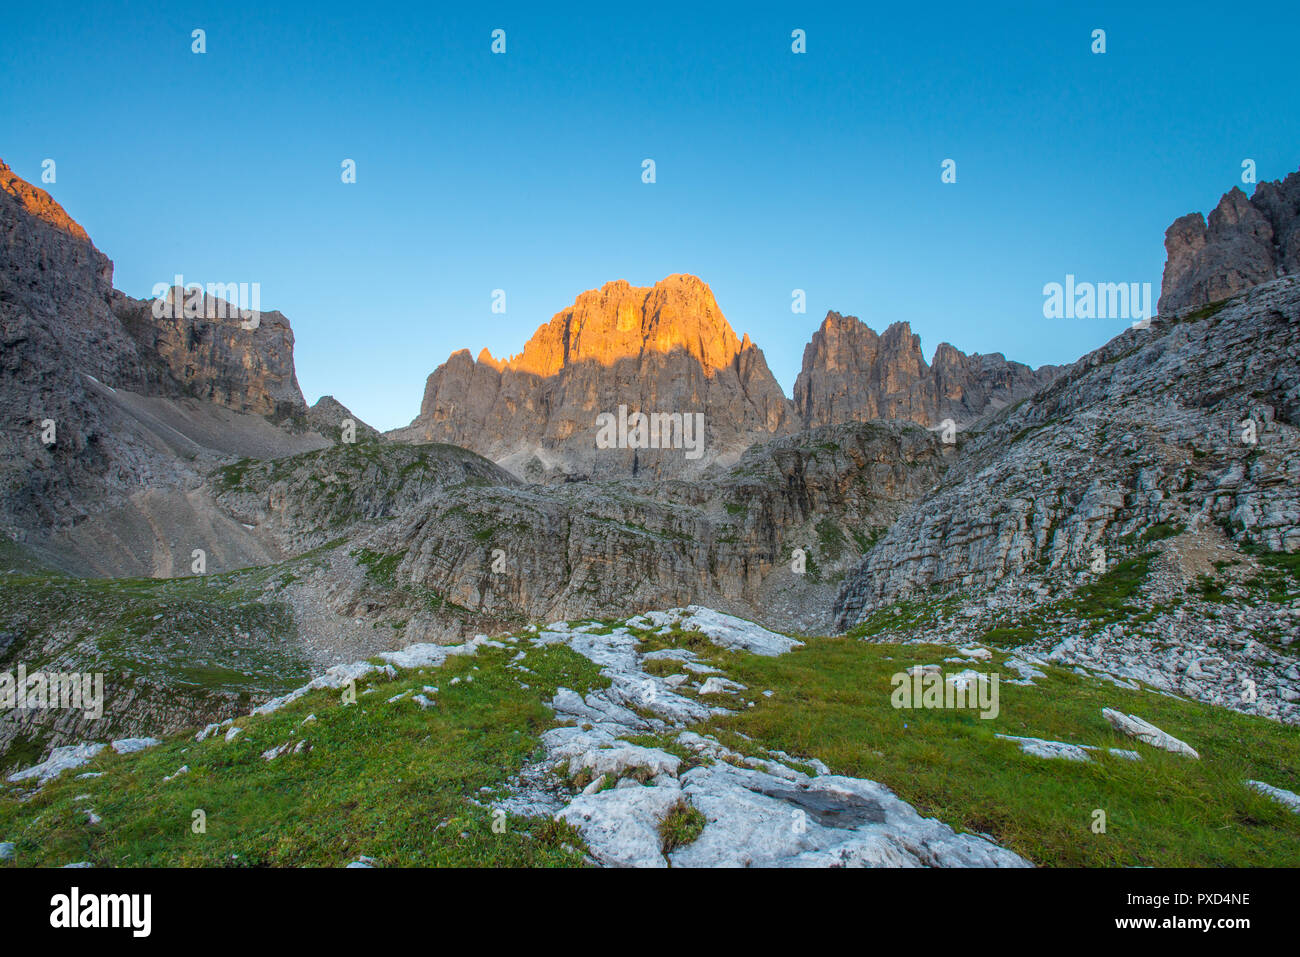 First daylight in the mountains, glowing mountain wall in the sunrise. Grass, rocks and boulders. Cloudless blue sky. - Stock Image